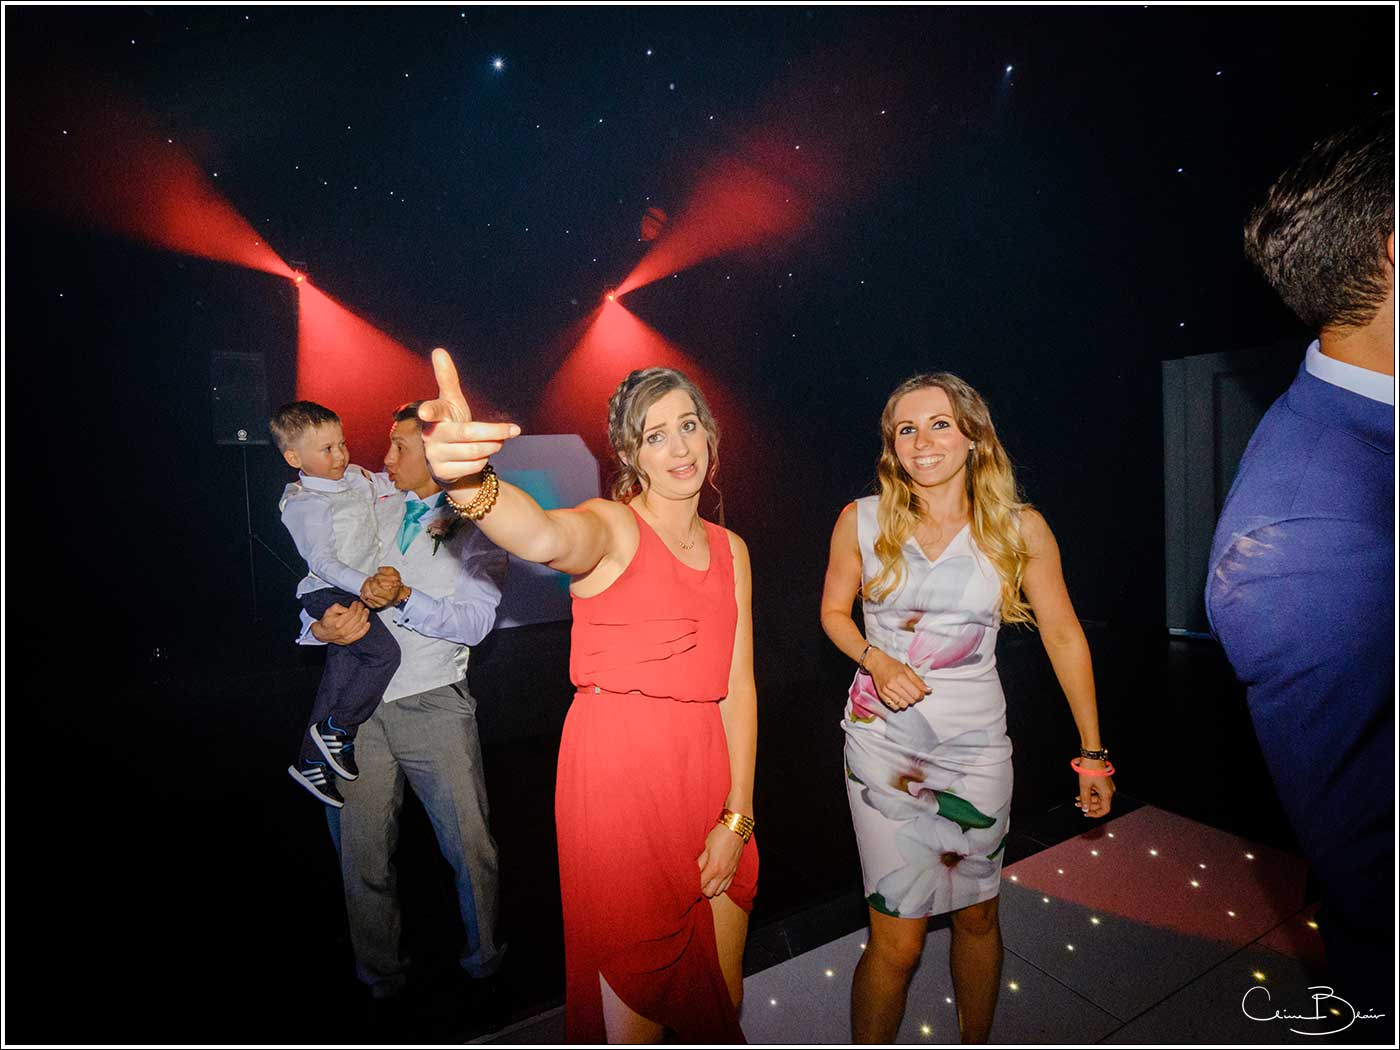 Coombe Abbey wedding photography showing 2 women playing up to the camera on the dance floor